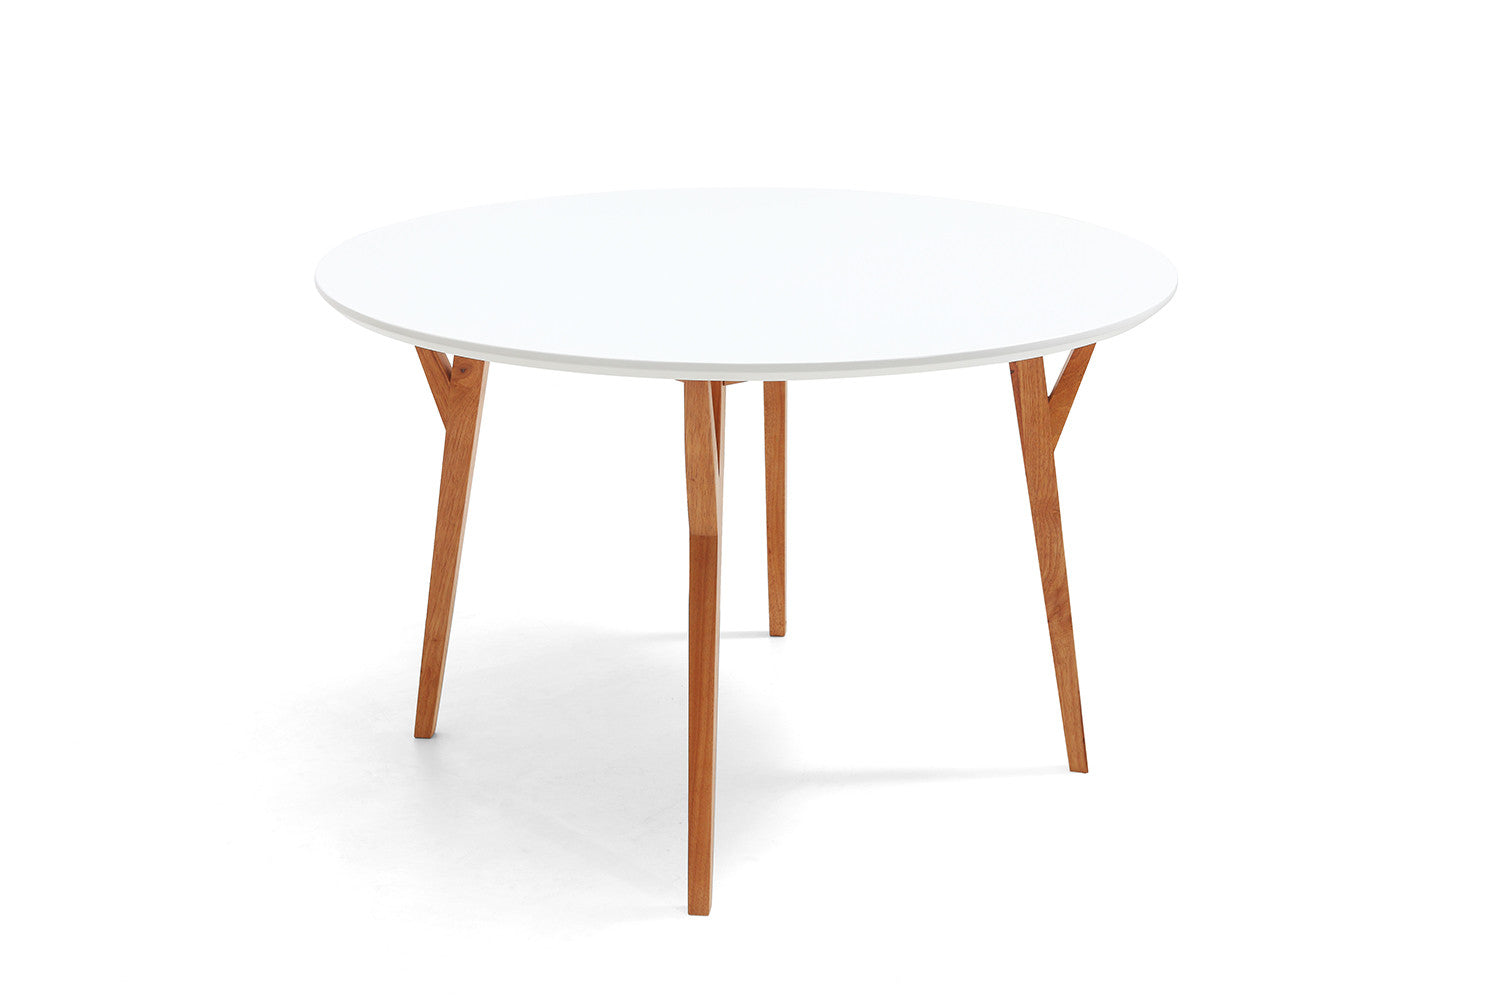 Table de salle manger ronde design scandinave moesa for Table ronde extensible scandinave